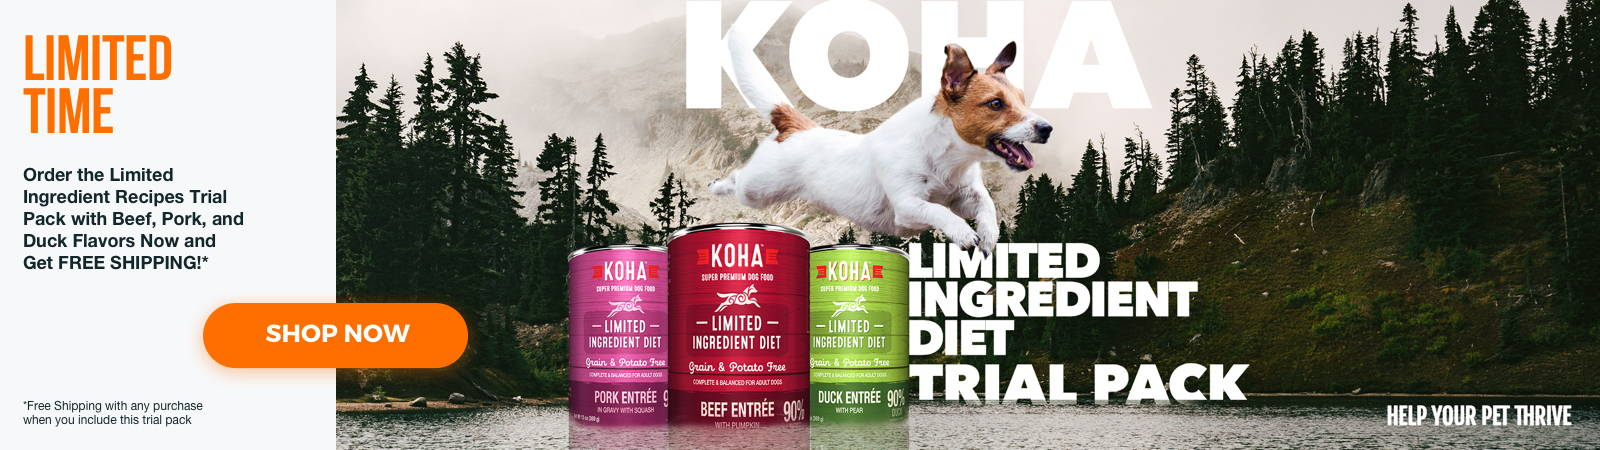 Limited Ingredient Diet Wet Dog Food Trial Pack